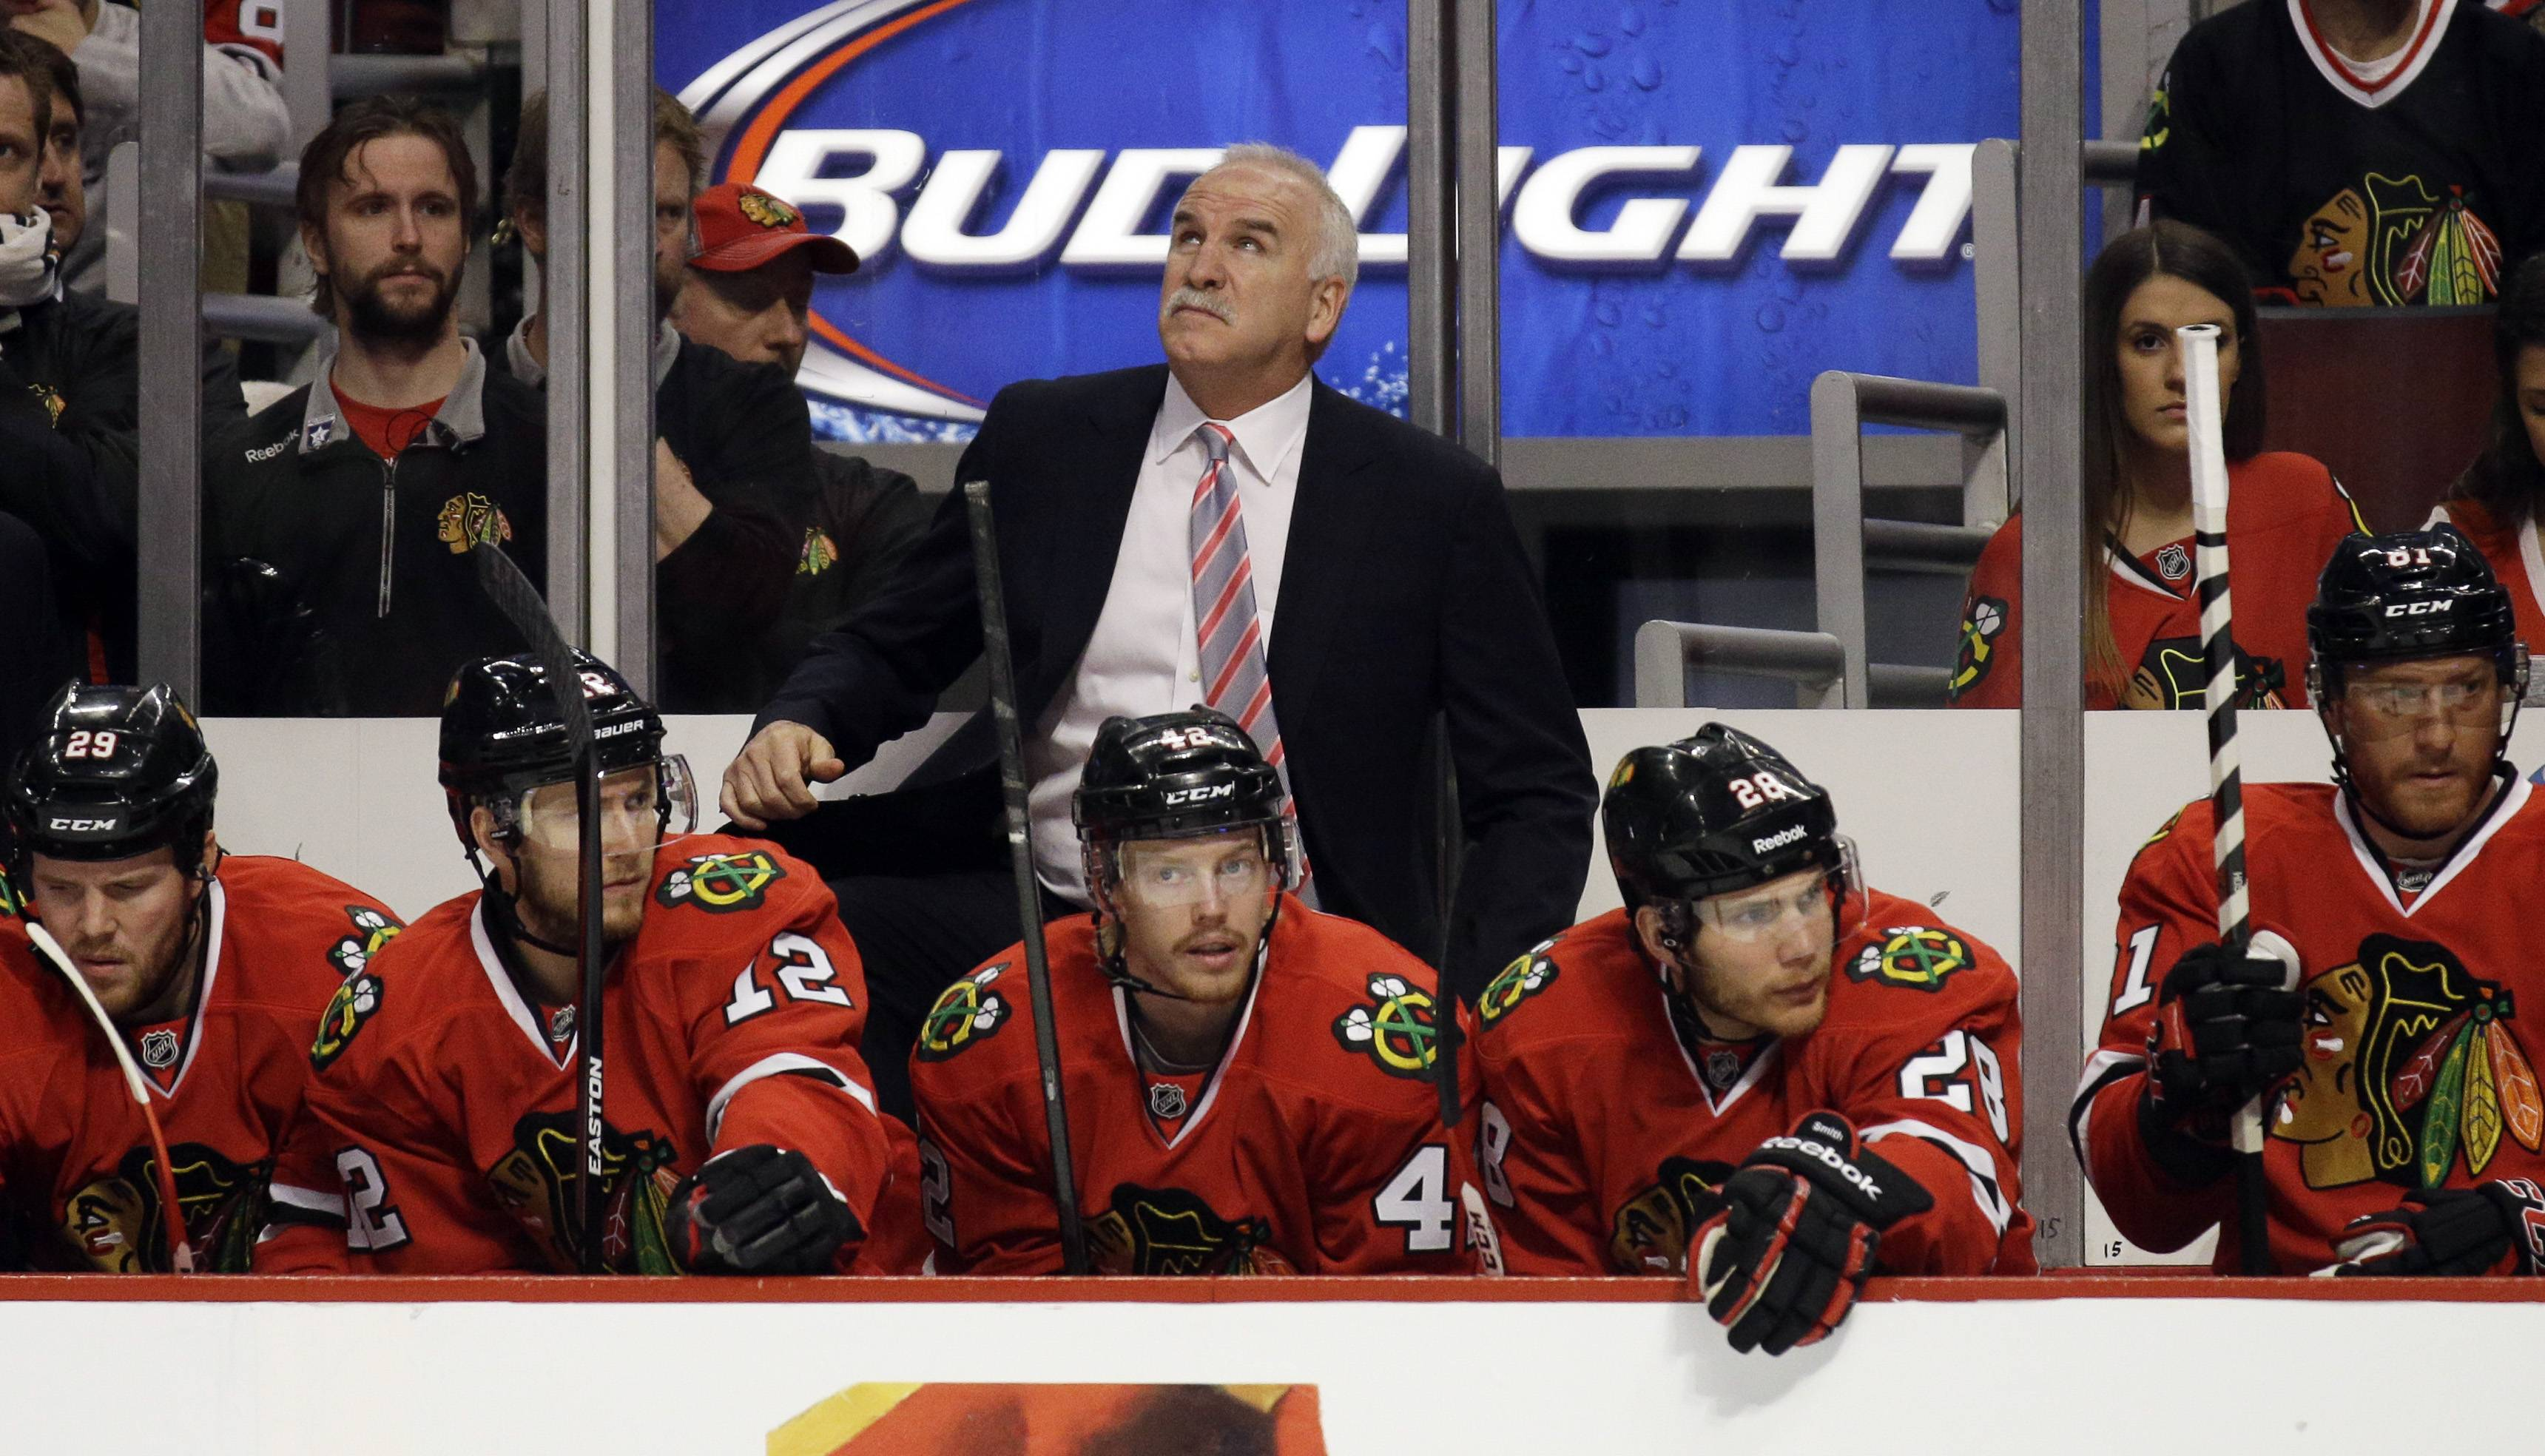 Chicago Blackhawks head coach Joel Quenneville looks up the score board during the first period in Game 5 of an NHL hockey second-round playoff series against the Minnesota Wild in Chicago,Sunday, May 11, 2014. The Blackhawks won 2-1. (AP Photo/Nam Y. Huh)